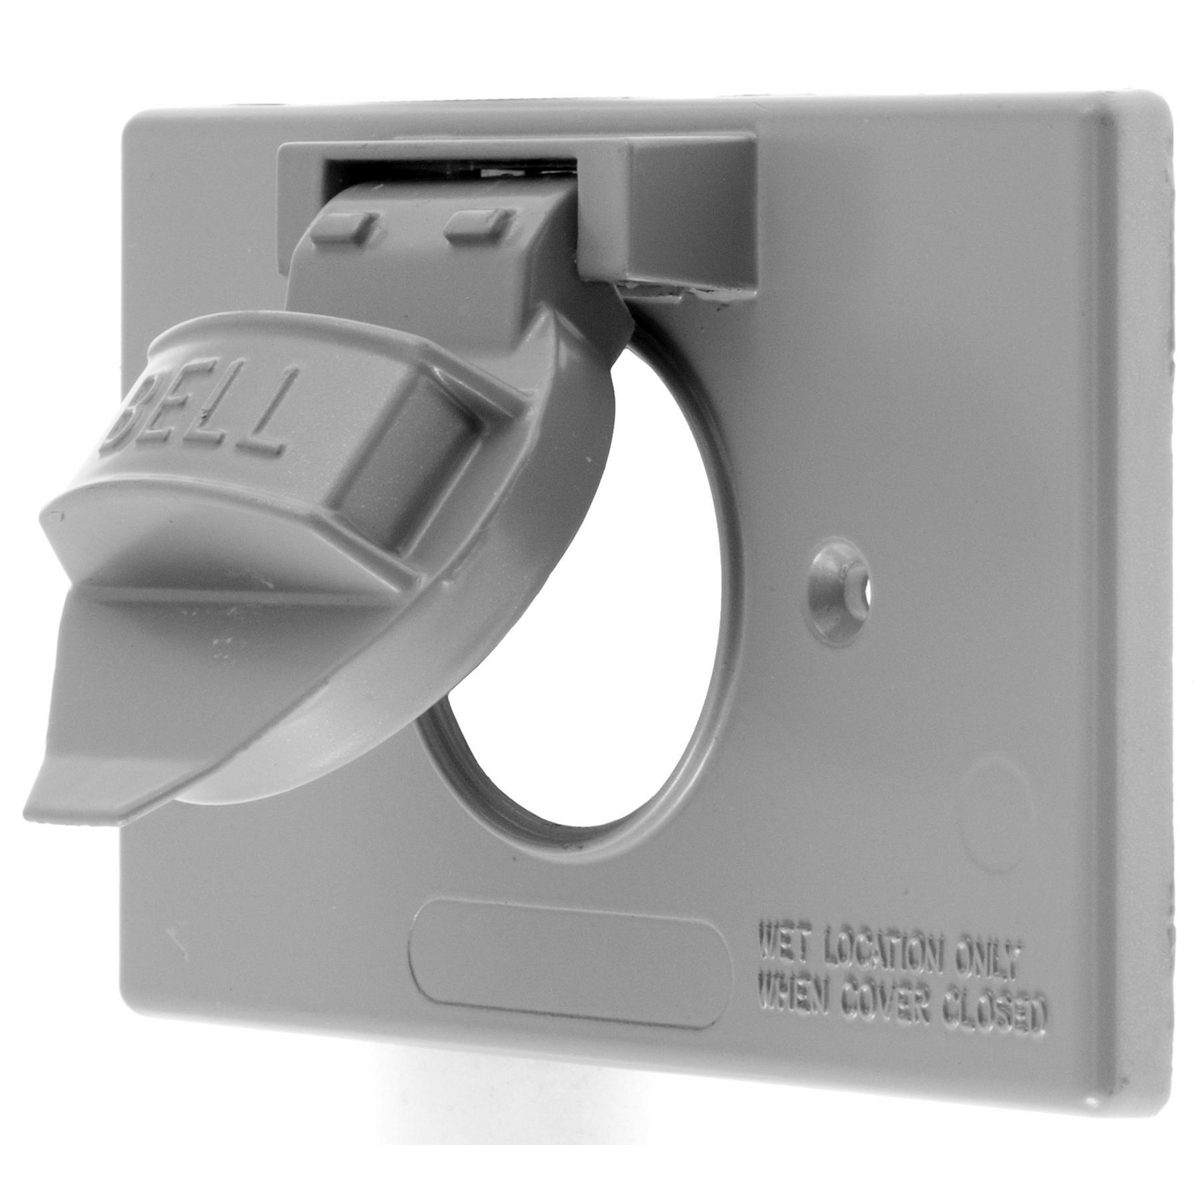 Hubbell RW51520 While-In-Use Cover